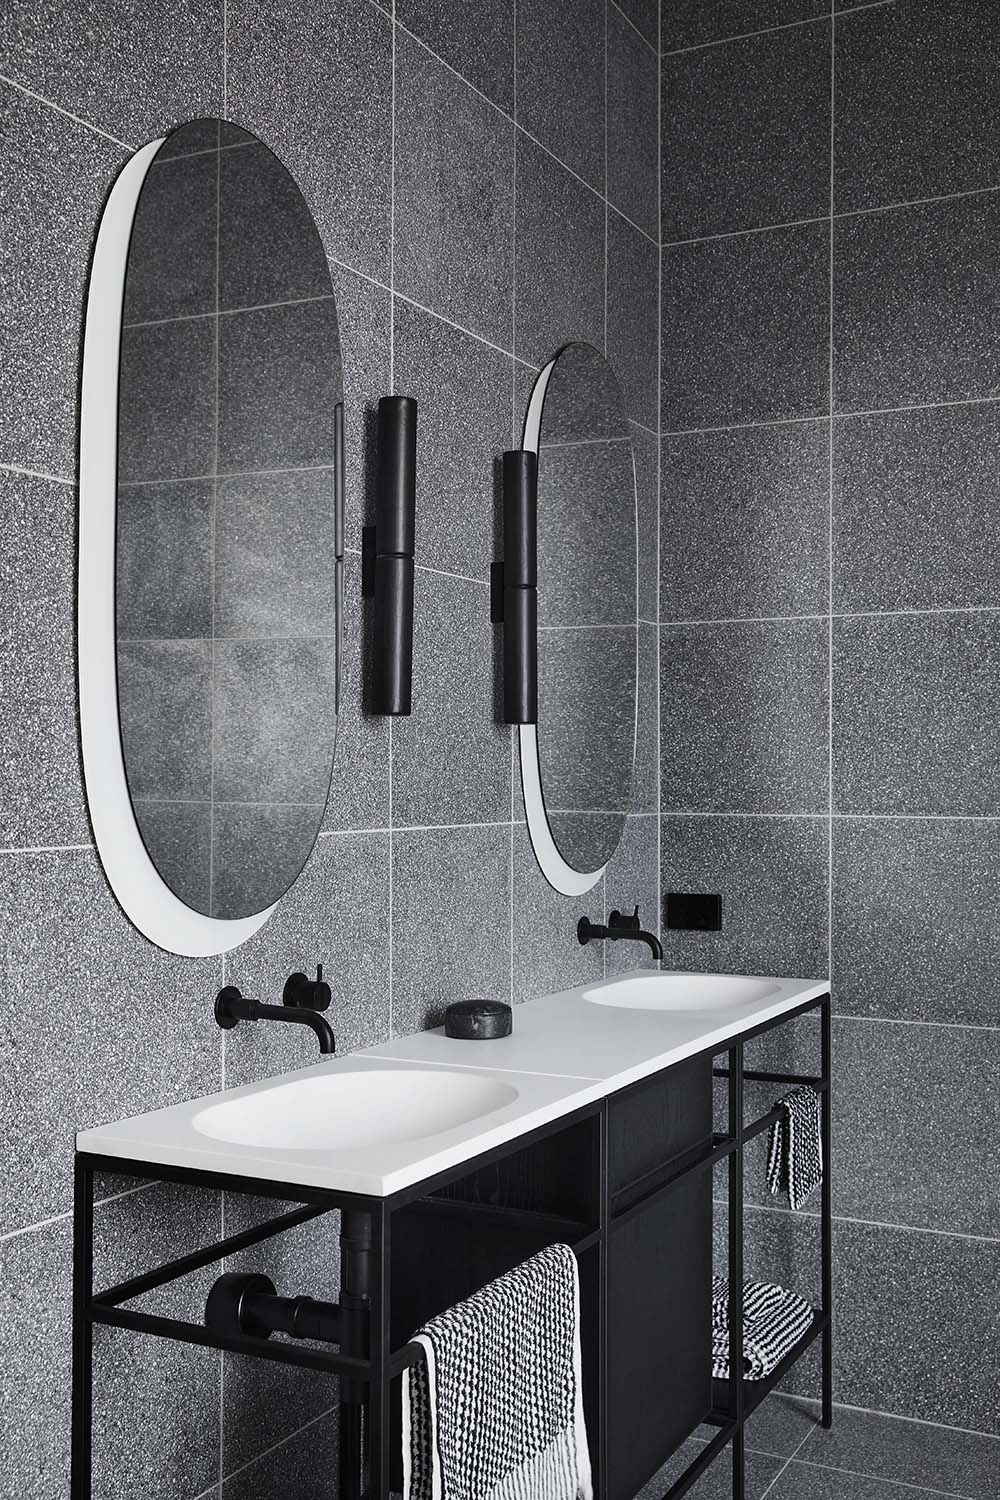 The extremely minimalist and slimline consoles by Ex.t, have black steel frames with white countertops and integrated basins, adding a lightness to the otherwise dark bathrooms.